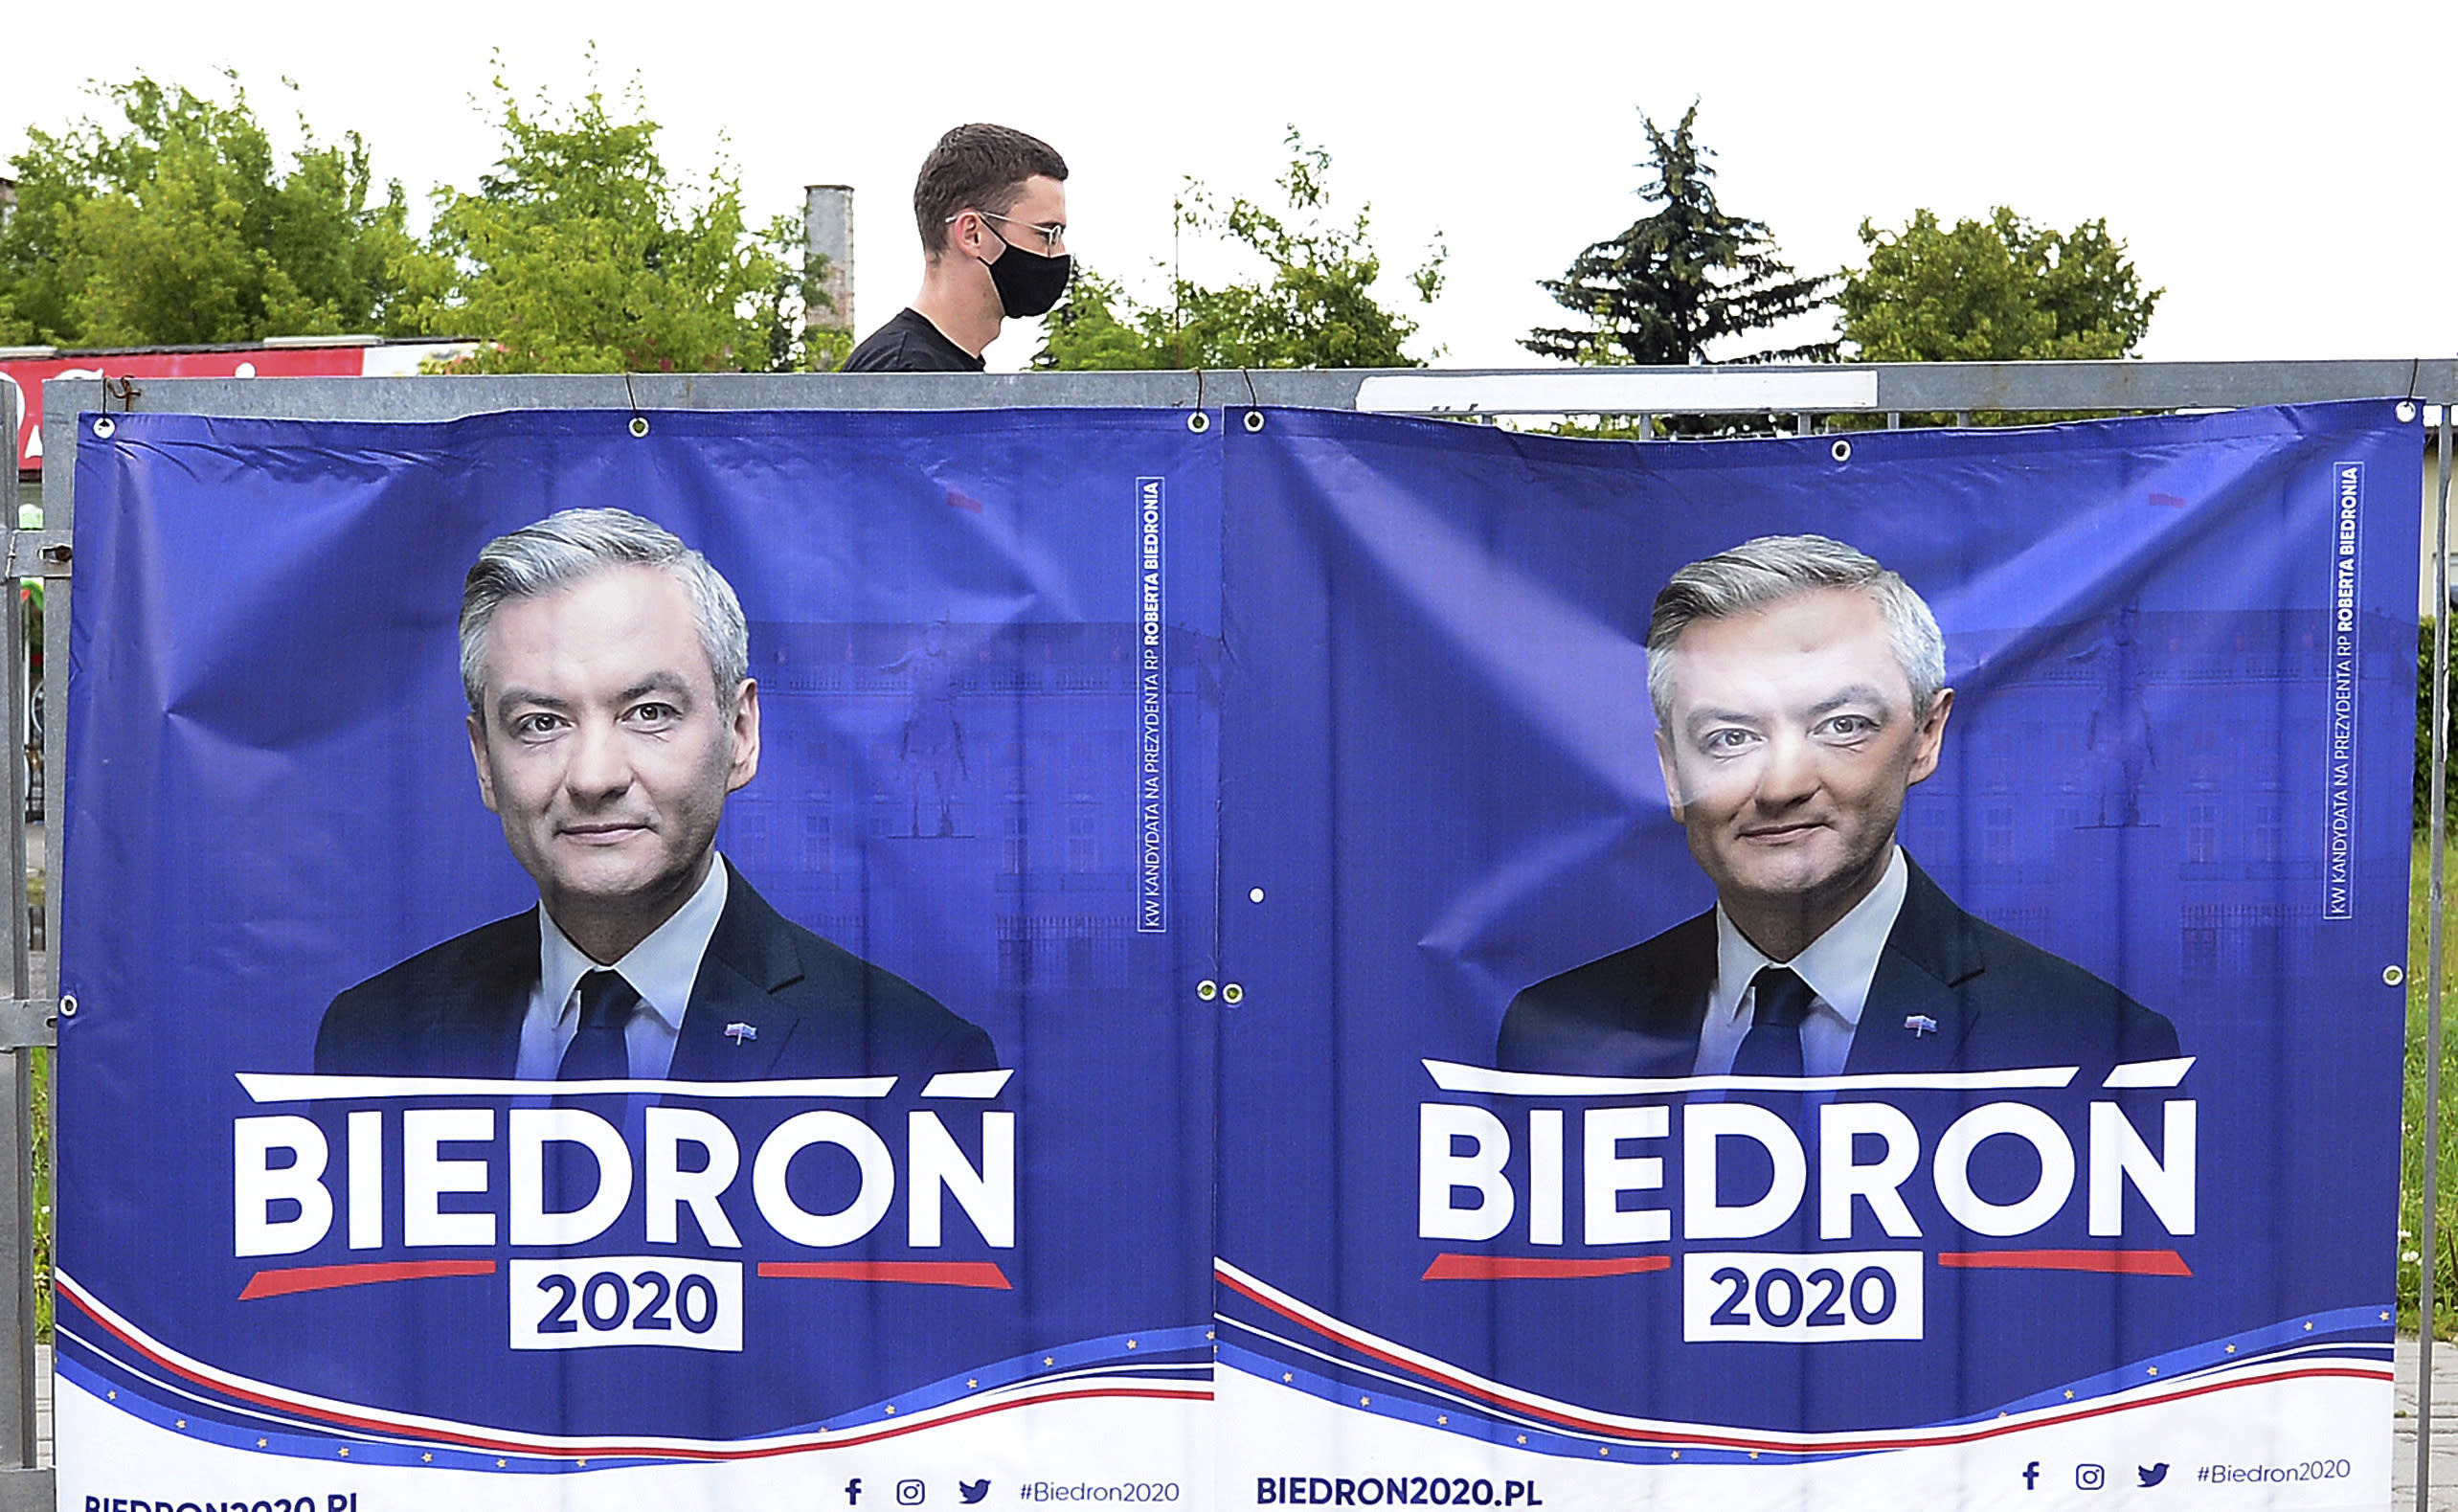 An electoral poster for left-wing candidate Robert Biedron is seen, in Warsaw, Poland, Tuesday, June 23, 2020. Biedron, who is openly gay, is currently at below 10% in the polls for Sunday's presidential election. (AP Photo/Czarek Sokolowski)